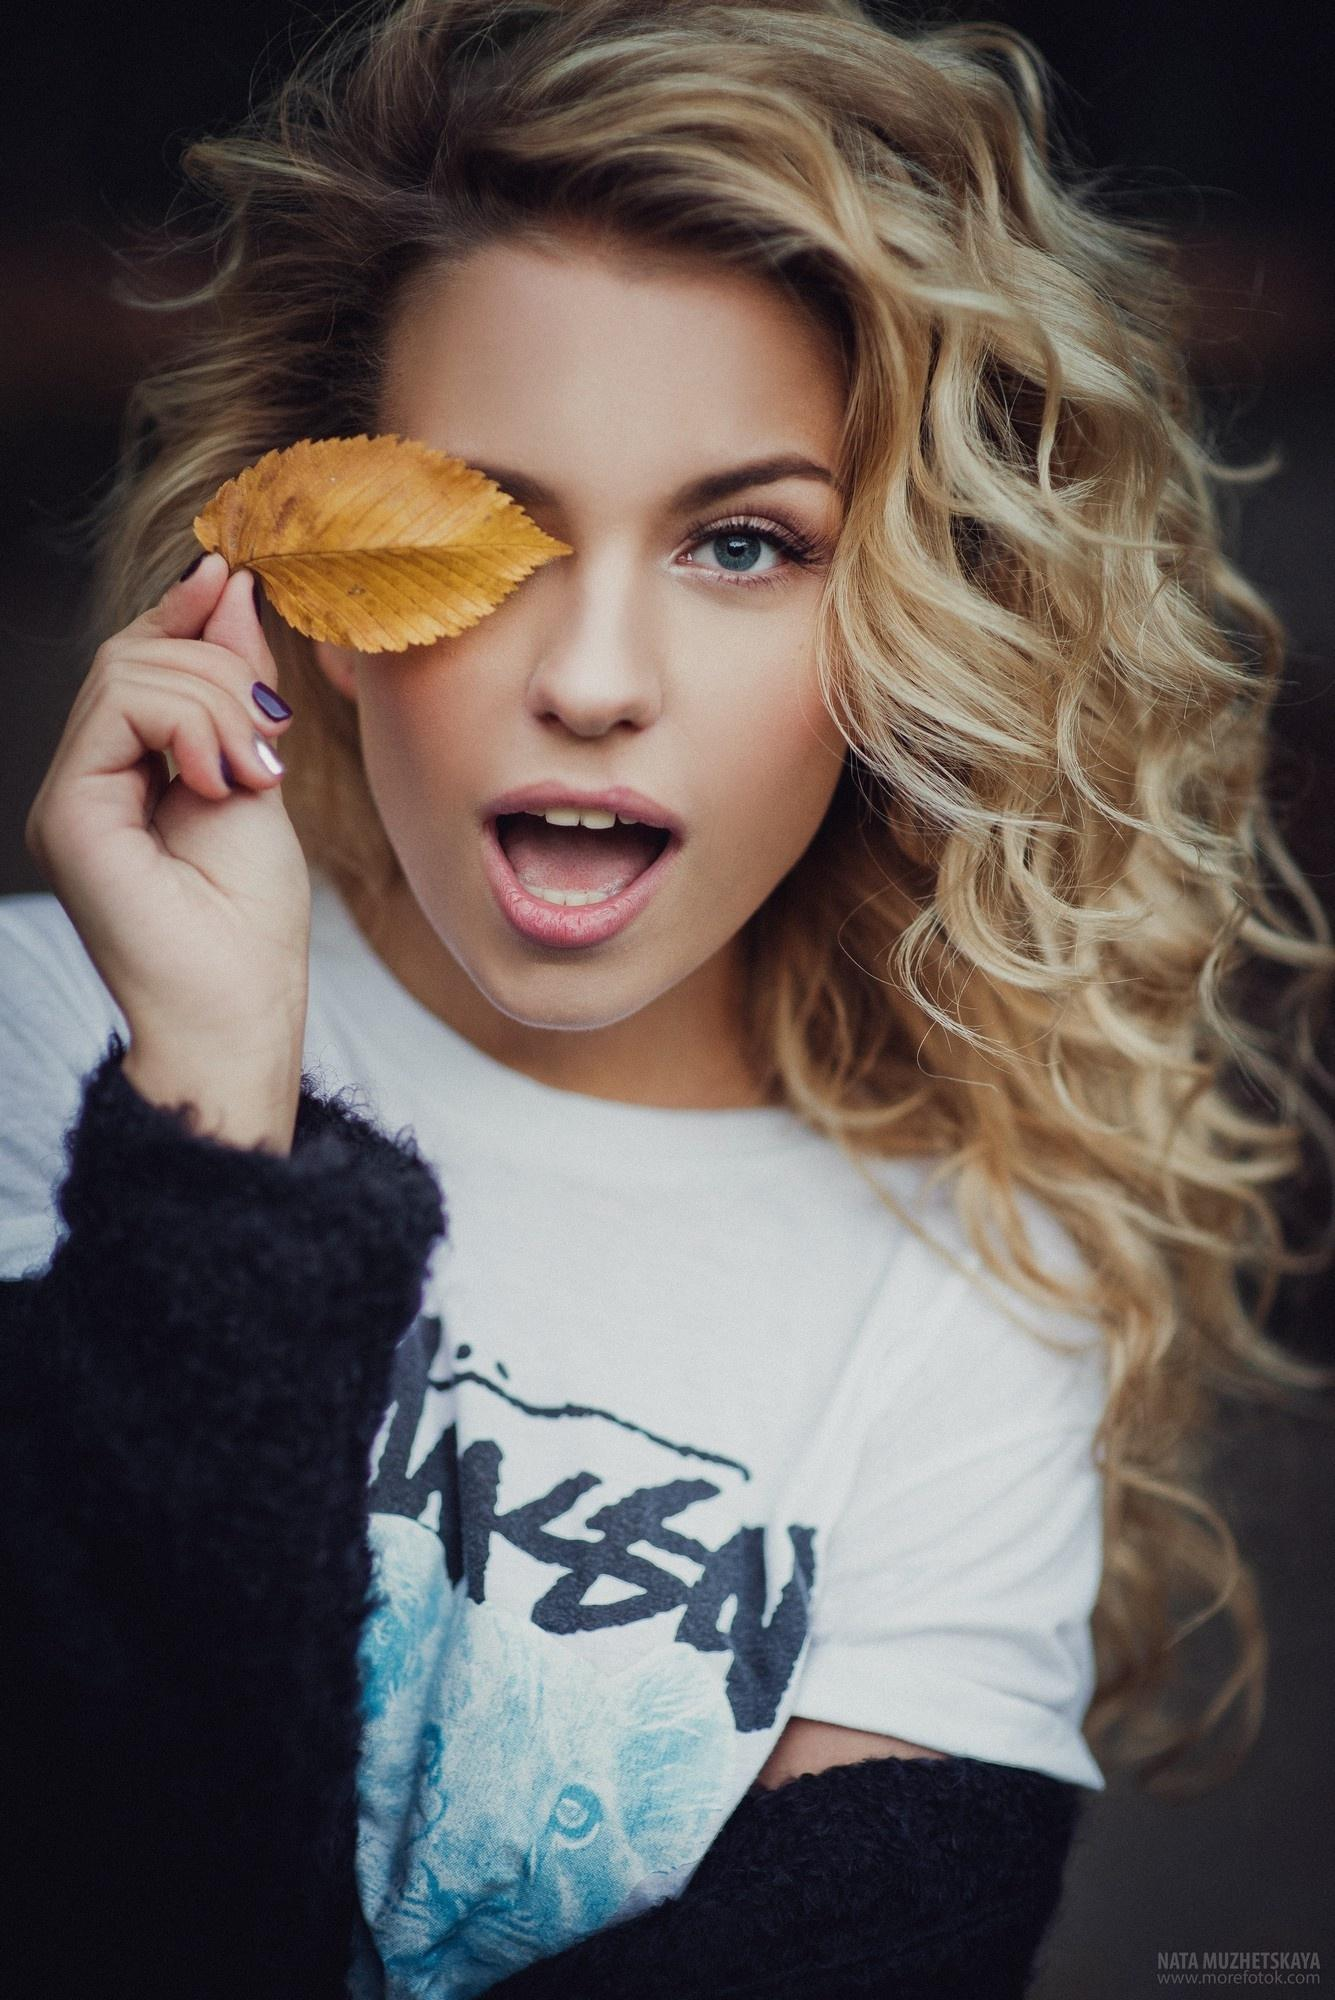 blonde girl nata muzhetskaya fashion portrait glamour pretty sexy young model eye hair lips beautiful skin face